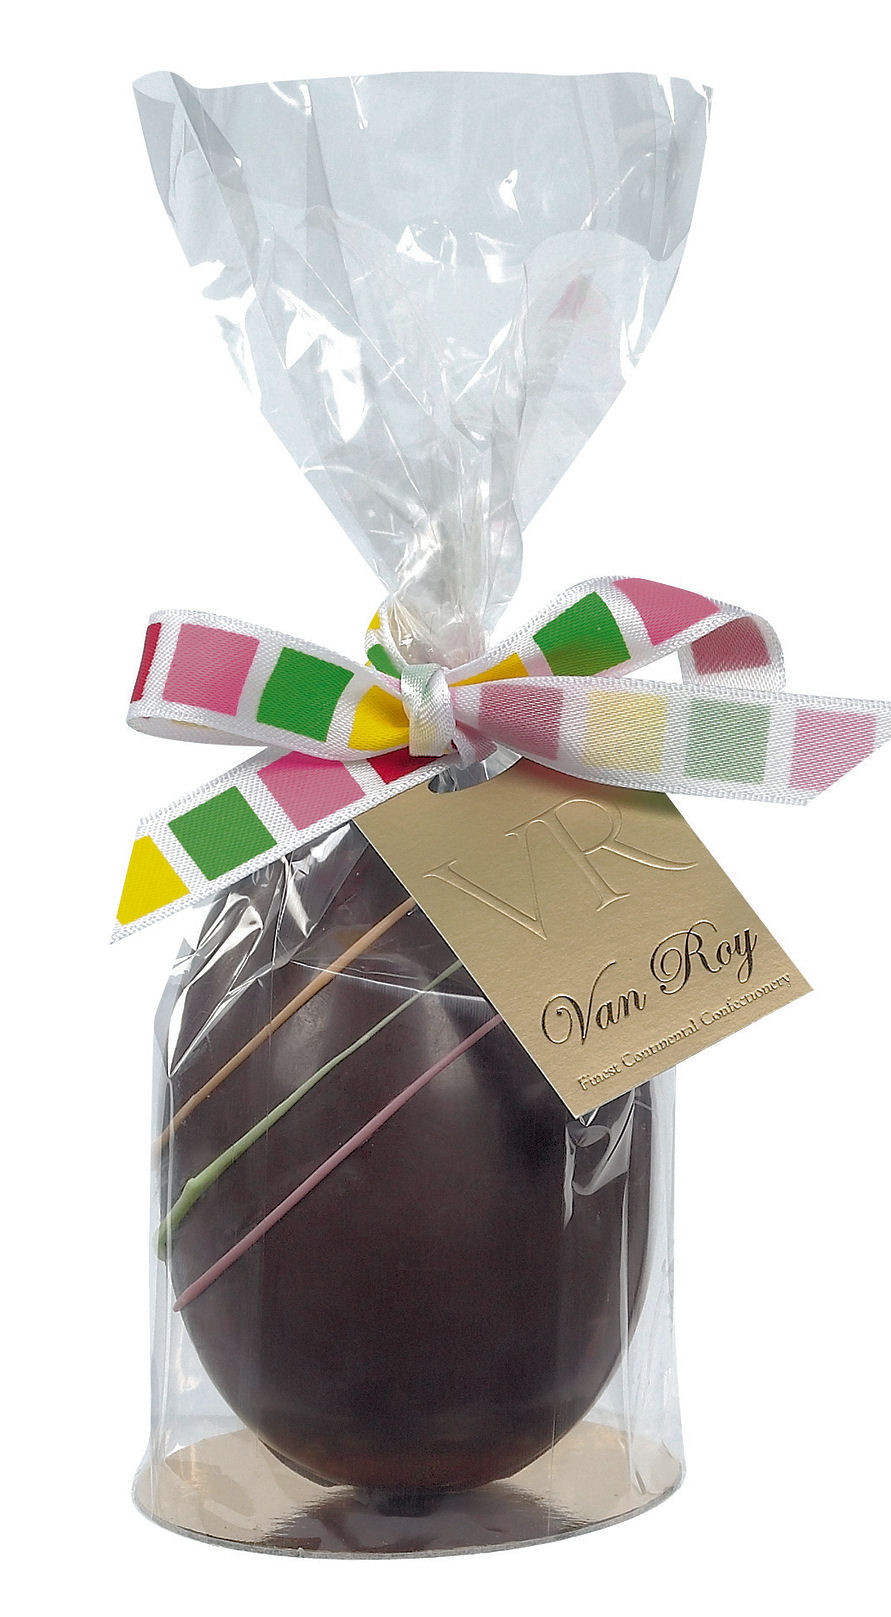 Van Roy Dark Chocolate Easter Egg 125G (image 1)